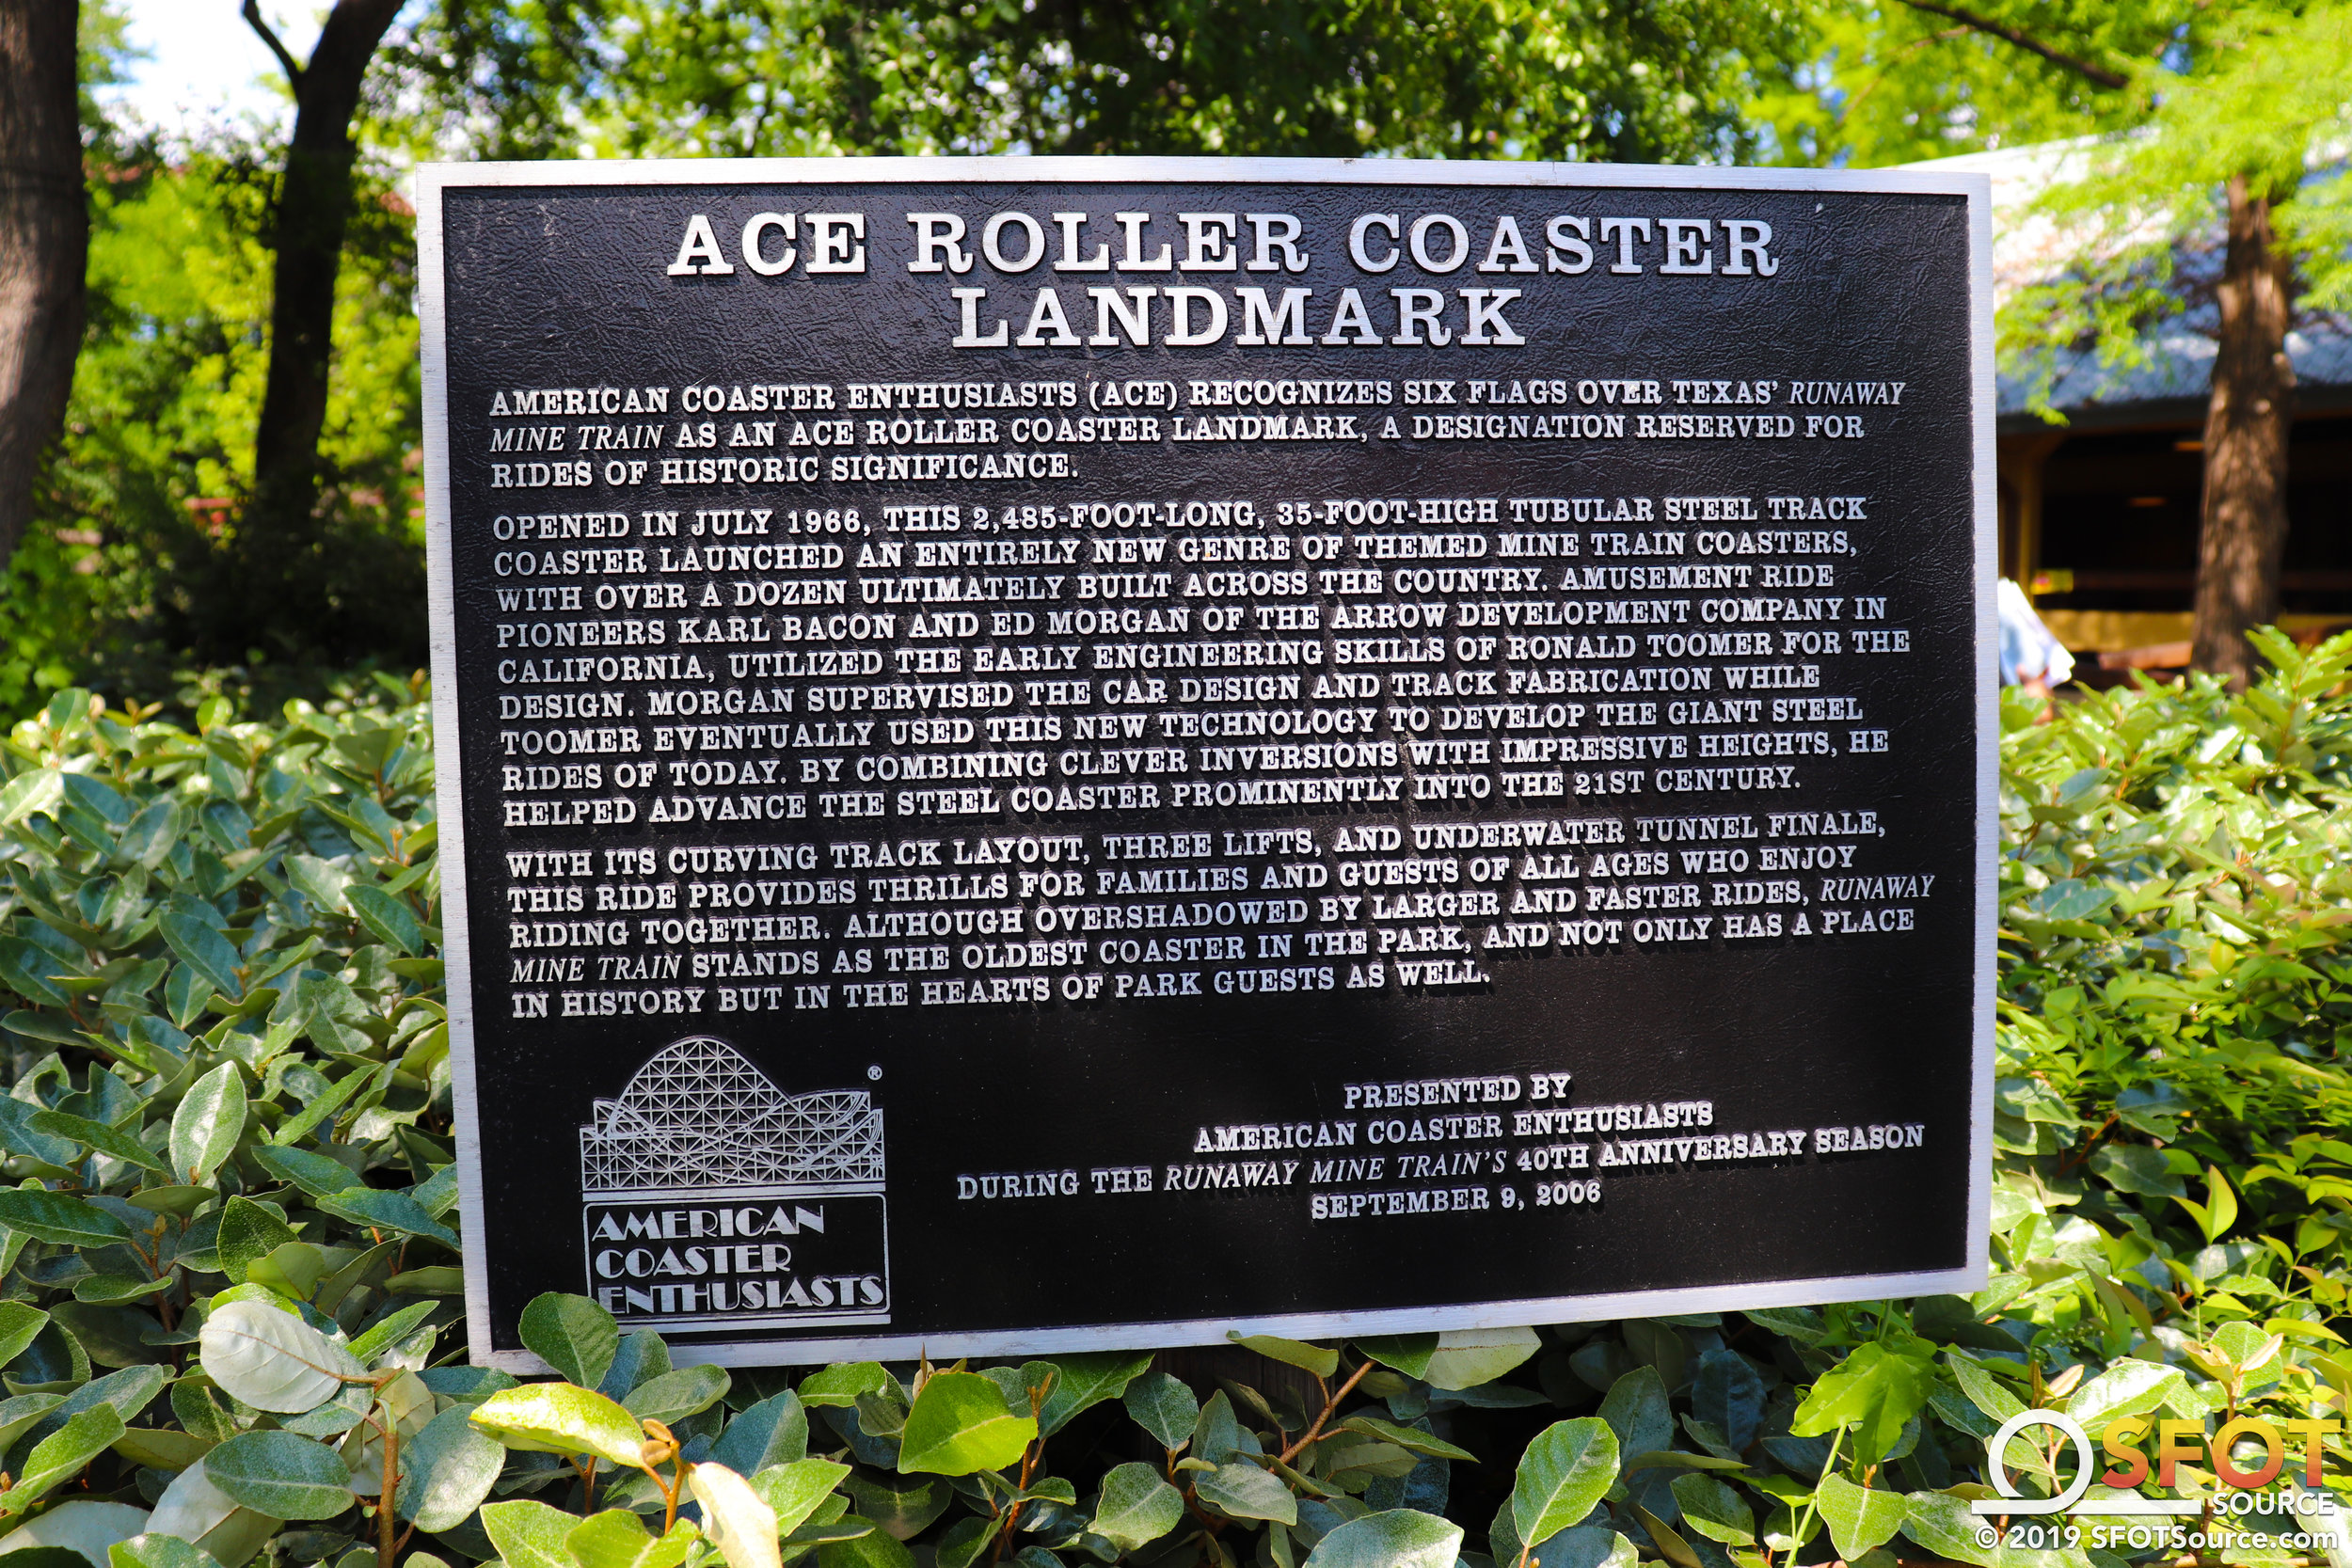 The ACE Roller Coaster Landmark plaque located at the entrance to Runaway Mine Train.